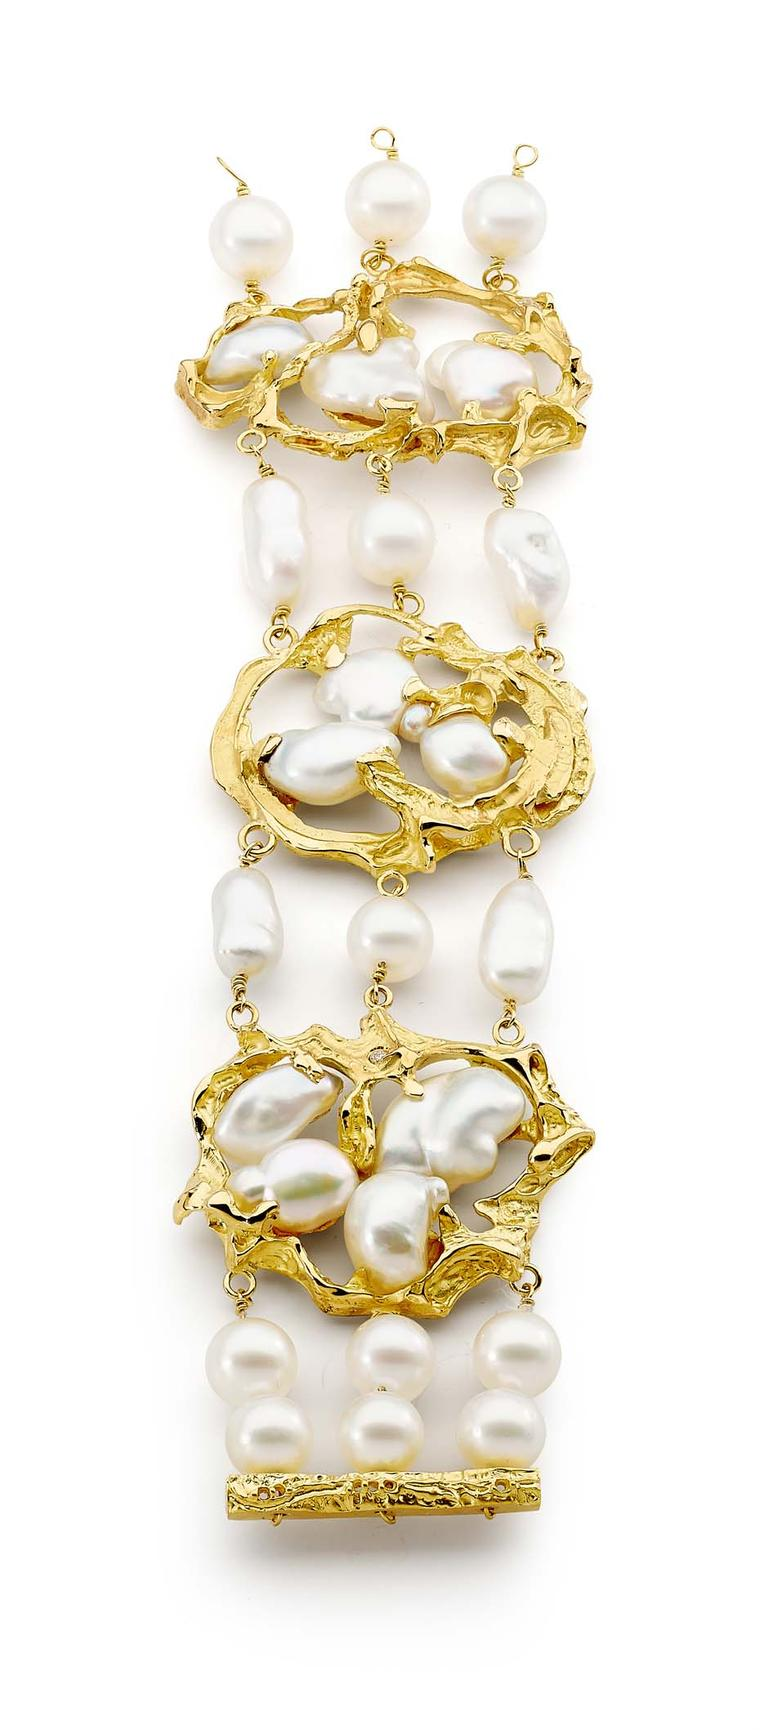 Linneys bracelet in white and yellow gold with Australian South Sea pearls and diamonds.